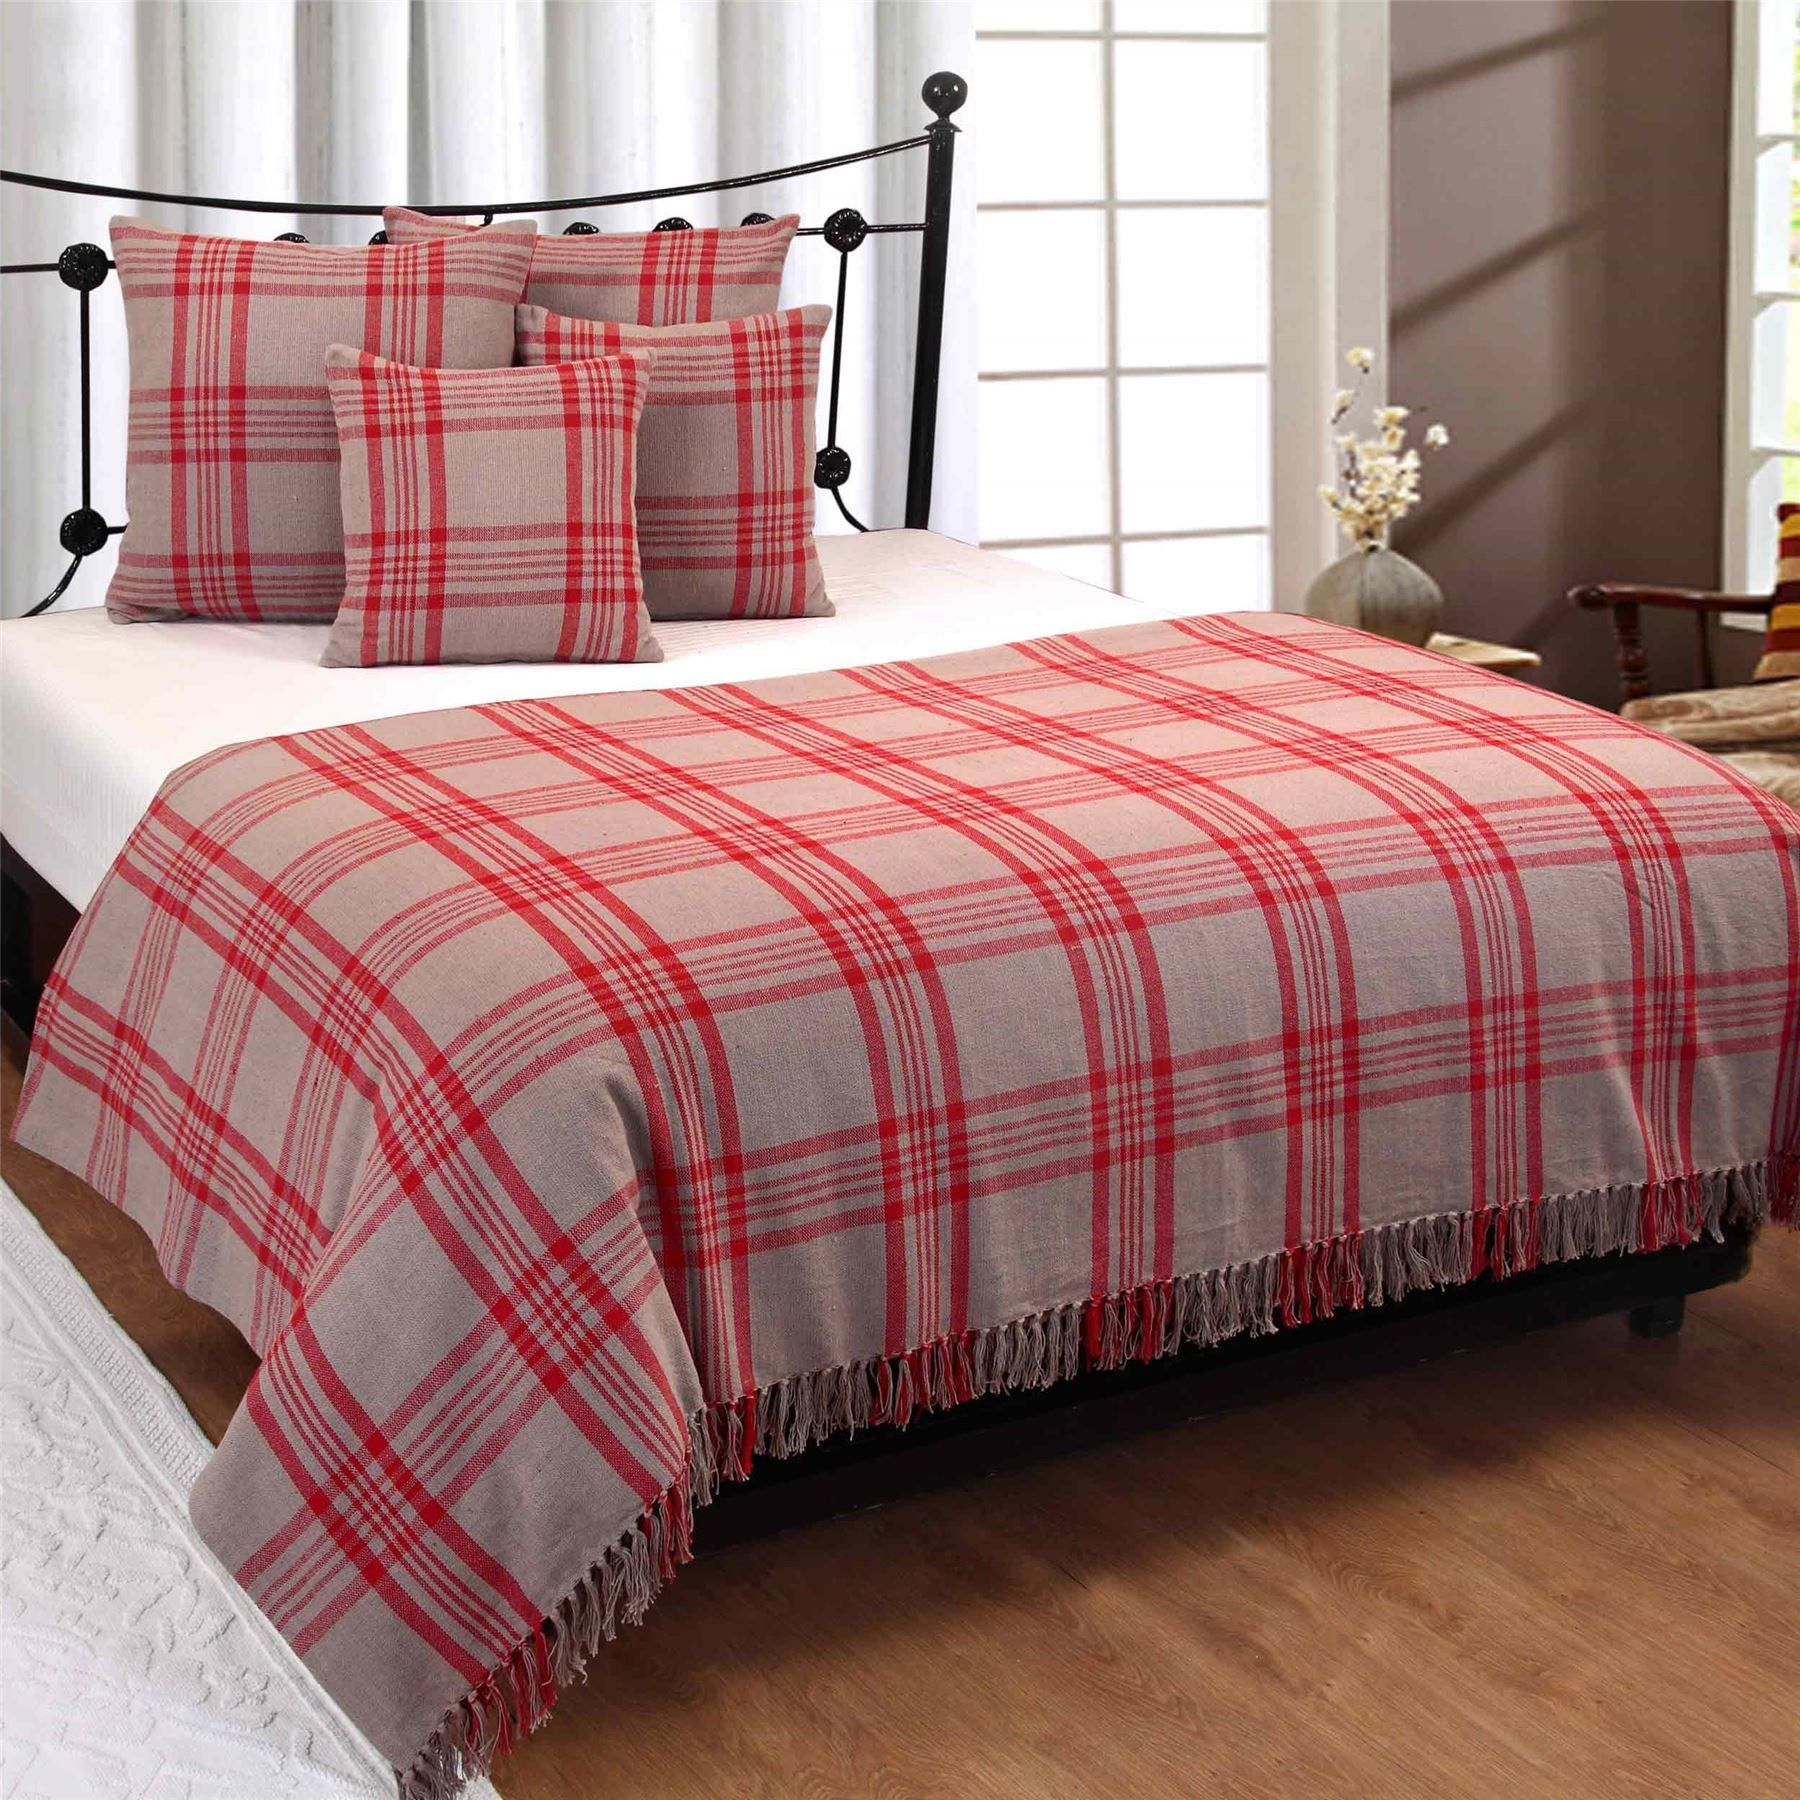 Throws Blankets And Bedspreads Awesome Cotton Extra Large Tartan Throws For Sofas Bed Throw Blankets Sofa Throw Cover Sofa Bed Throws Sofa Throw